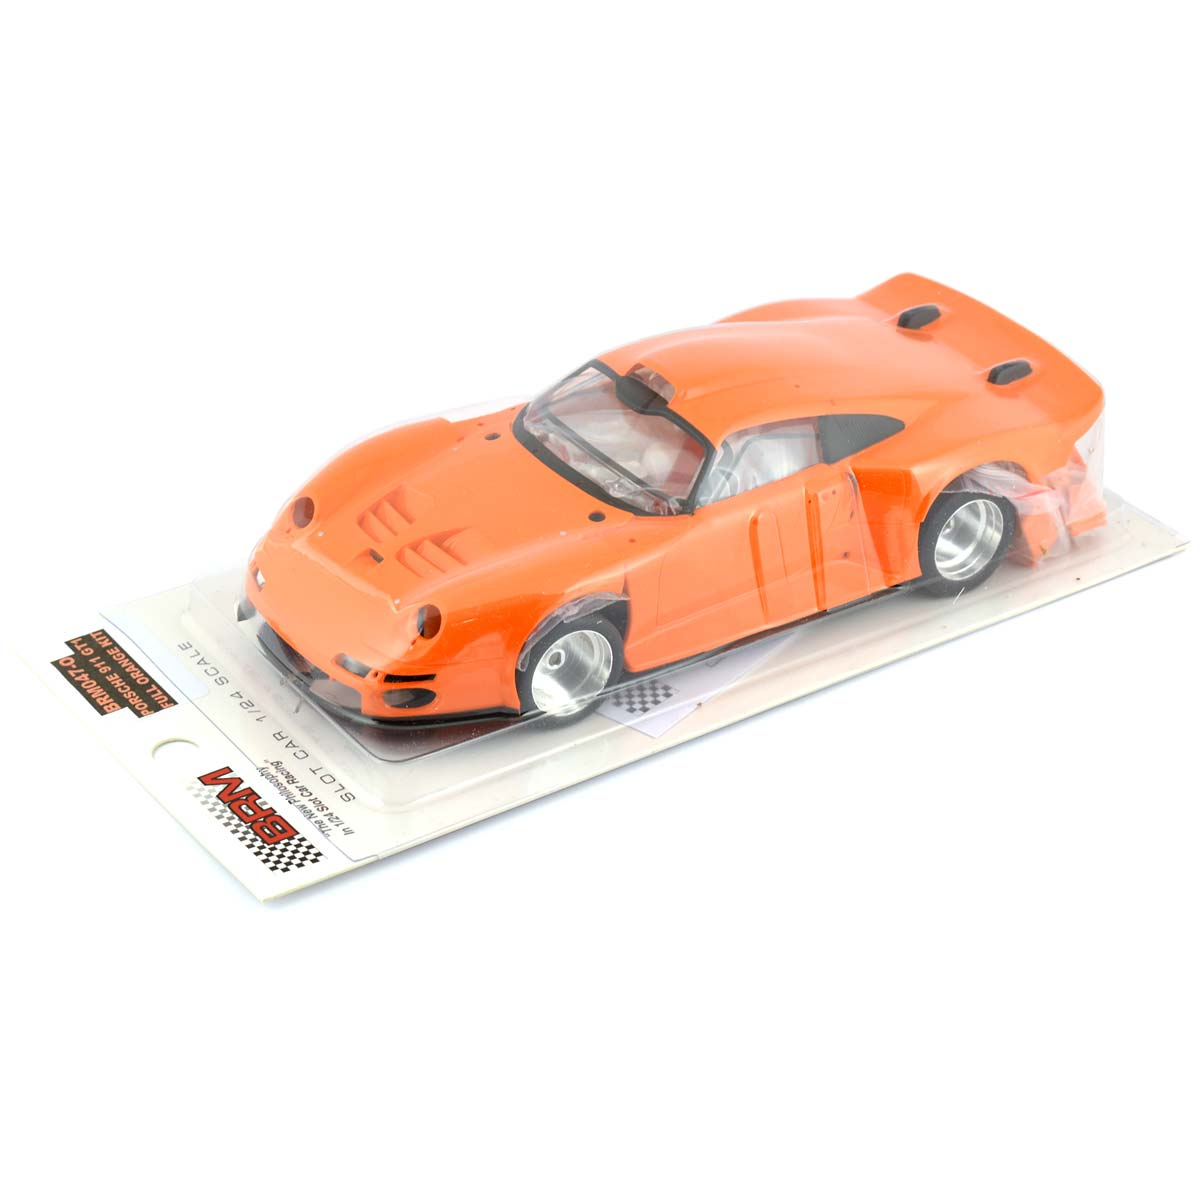 brm porsche 911 gt1 kit orange 1 24th scale brm 047o. Black Bedroom Furniture Sets. Home Design Ideas